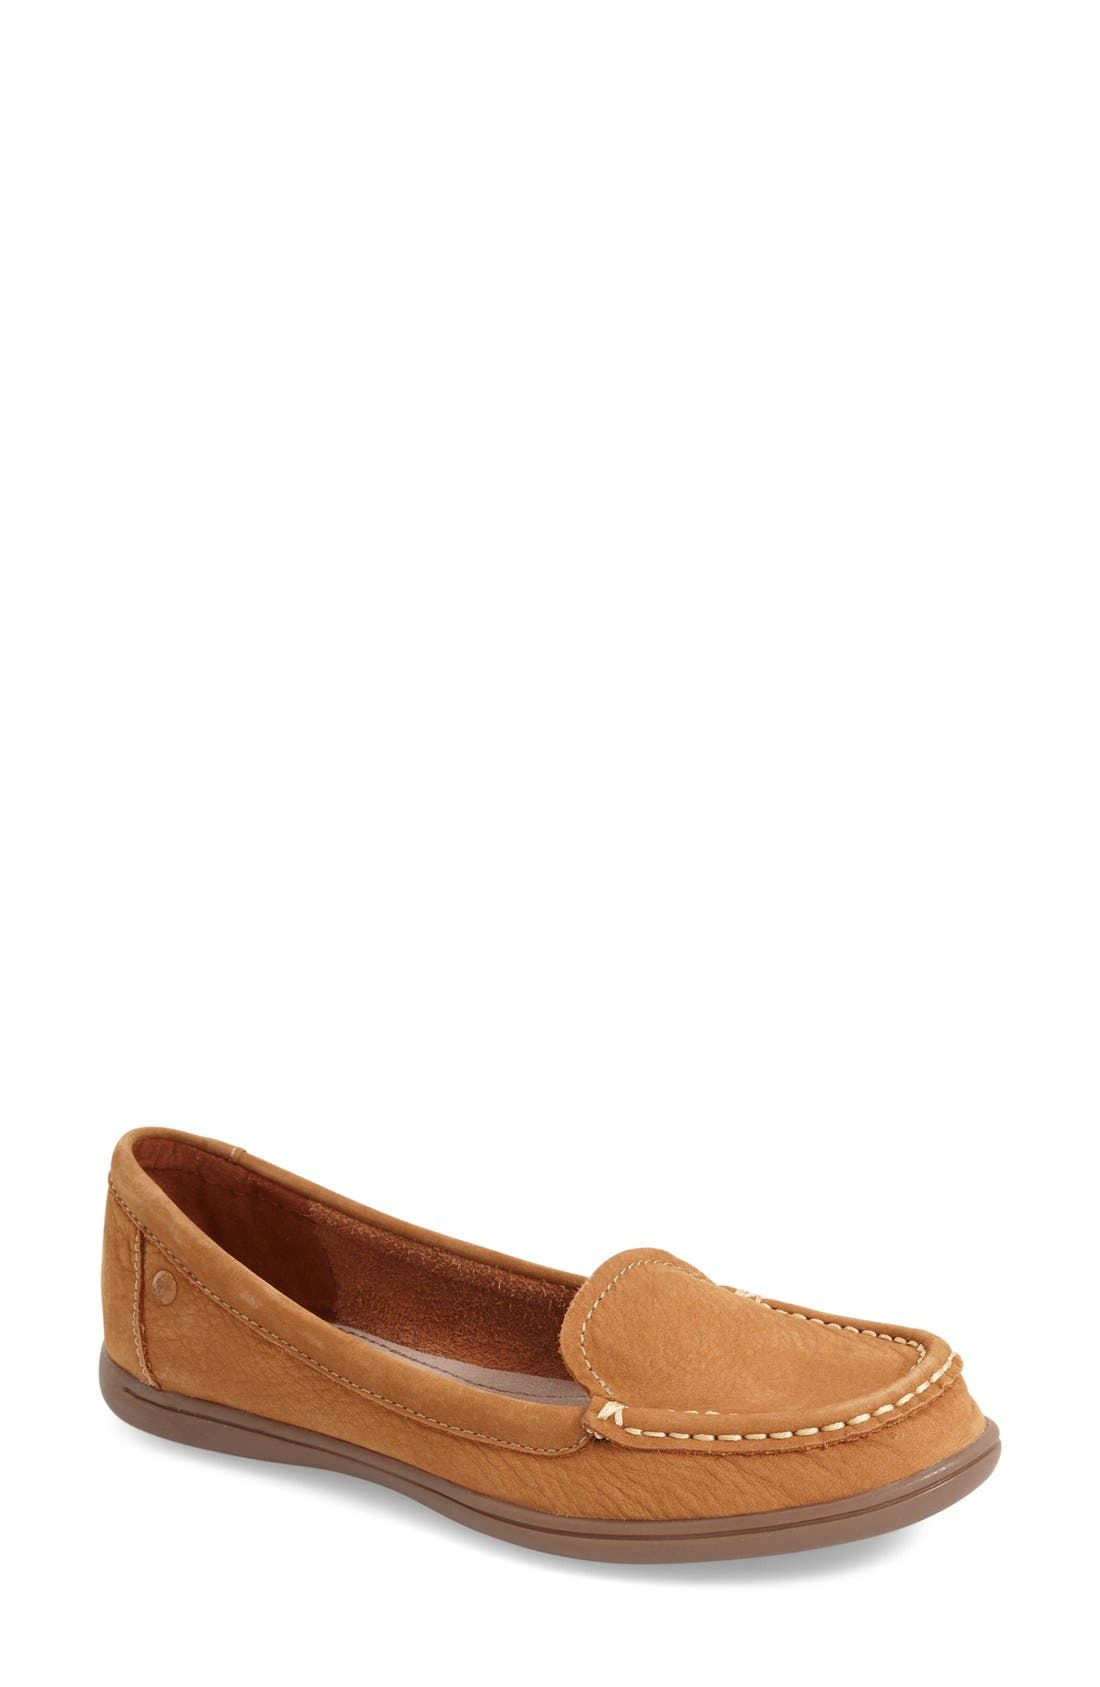 Hush Puppies 'Ryann Claudine' Loafer (Women)